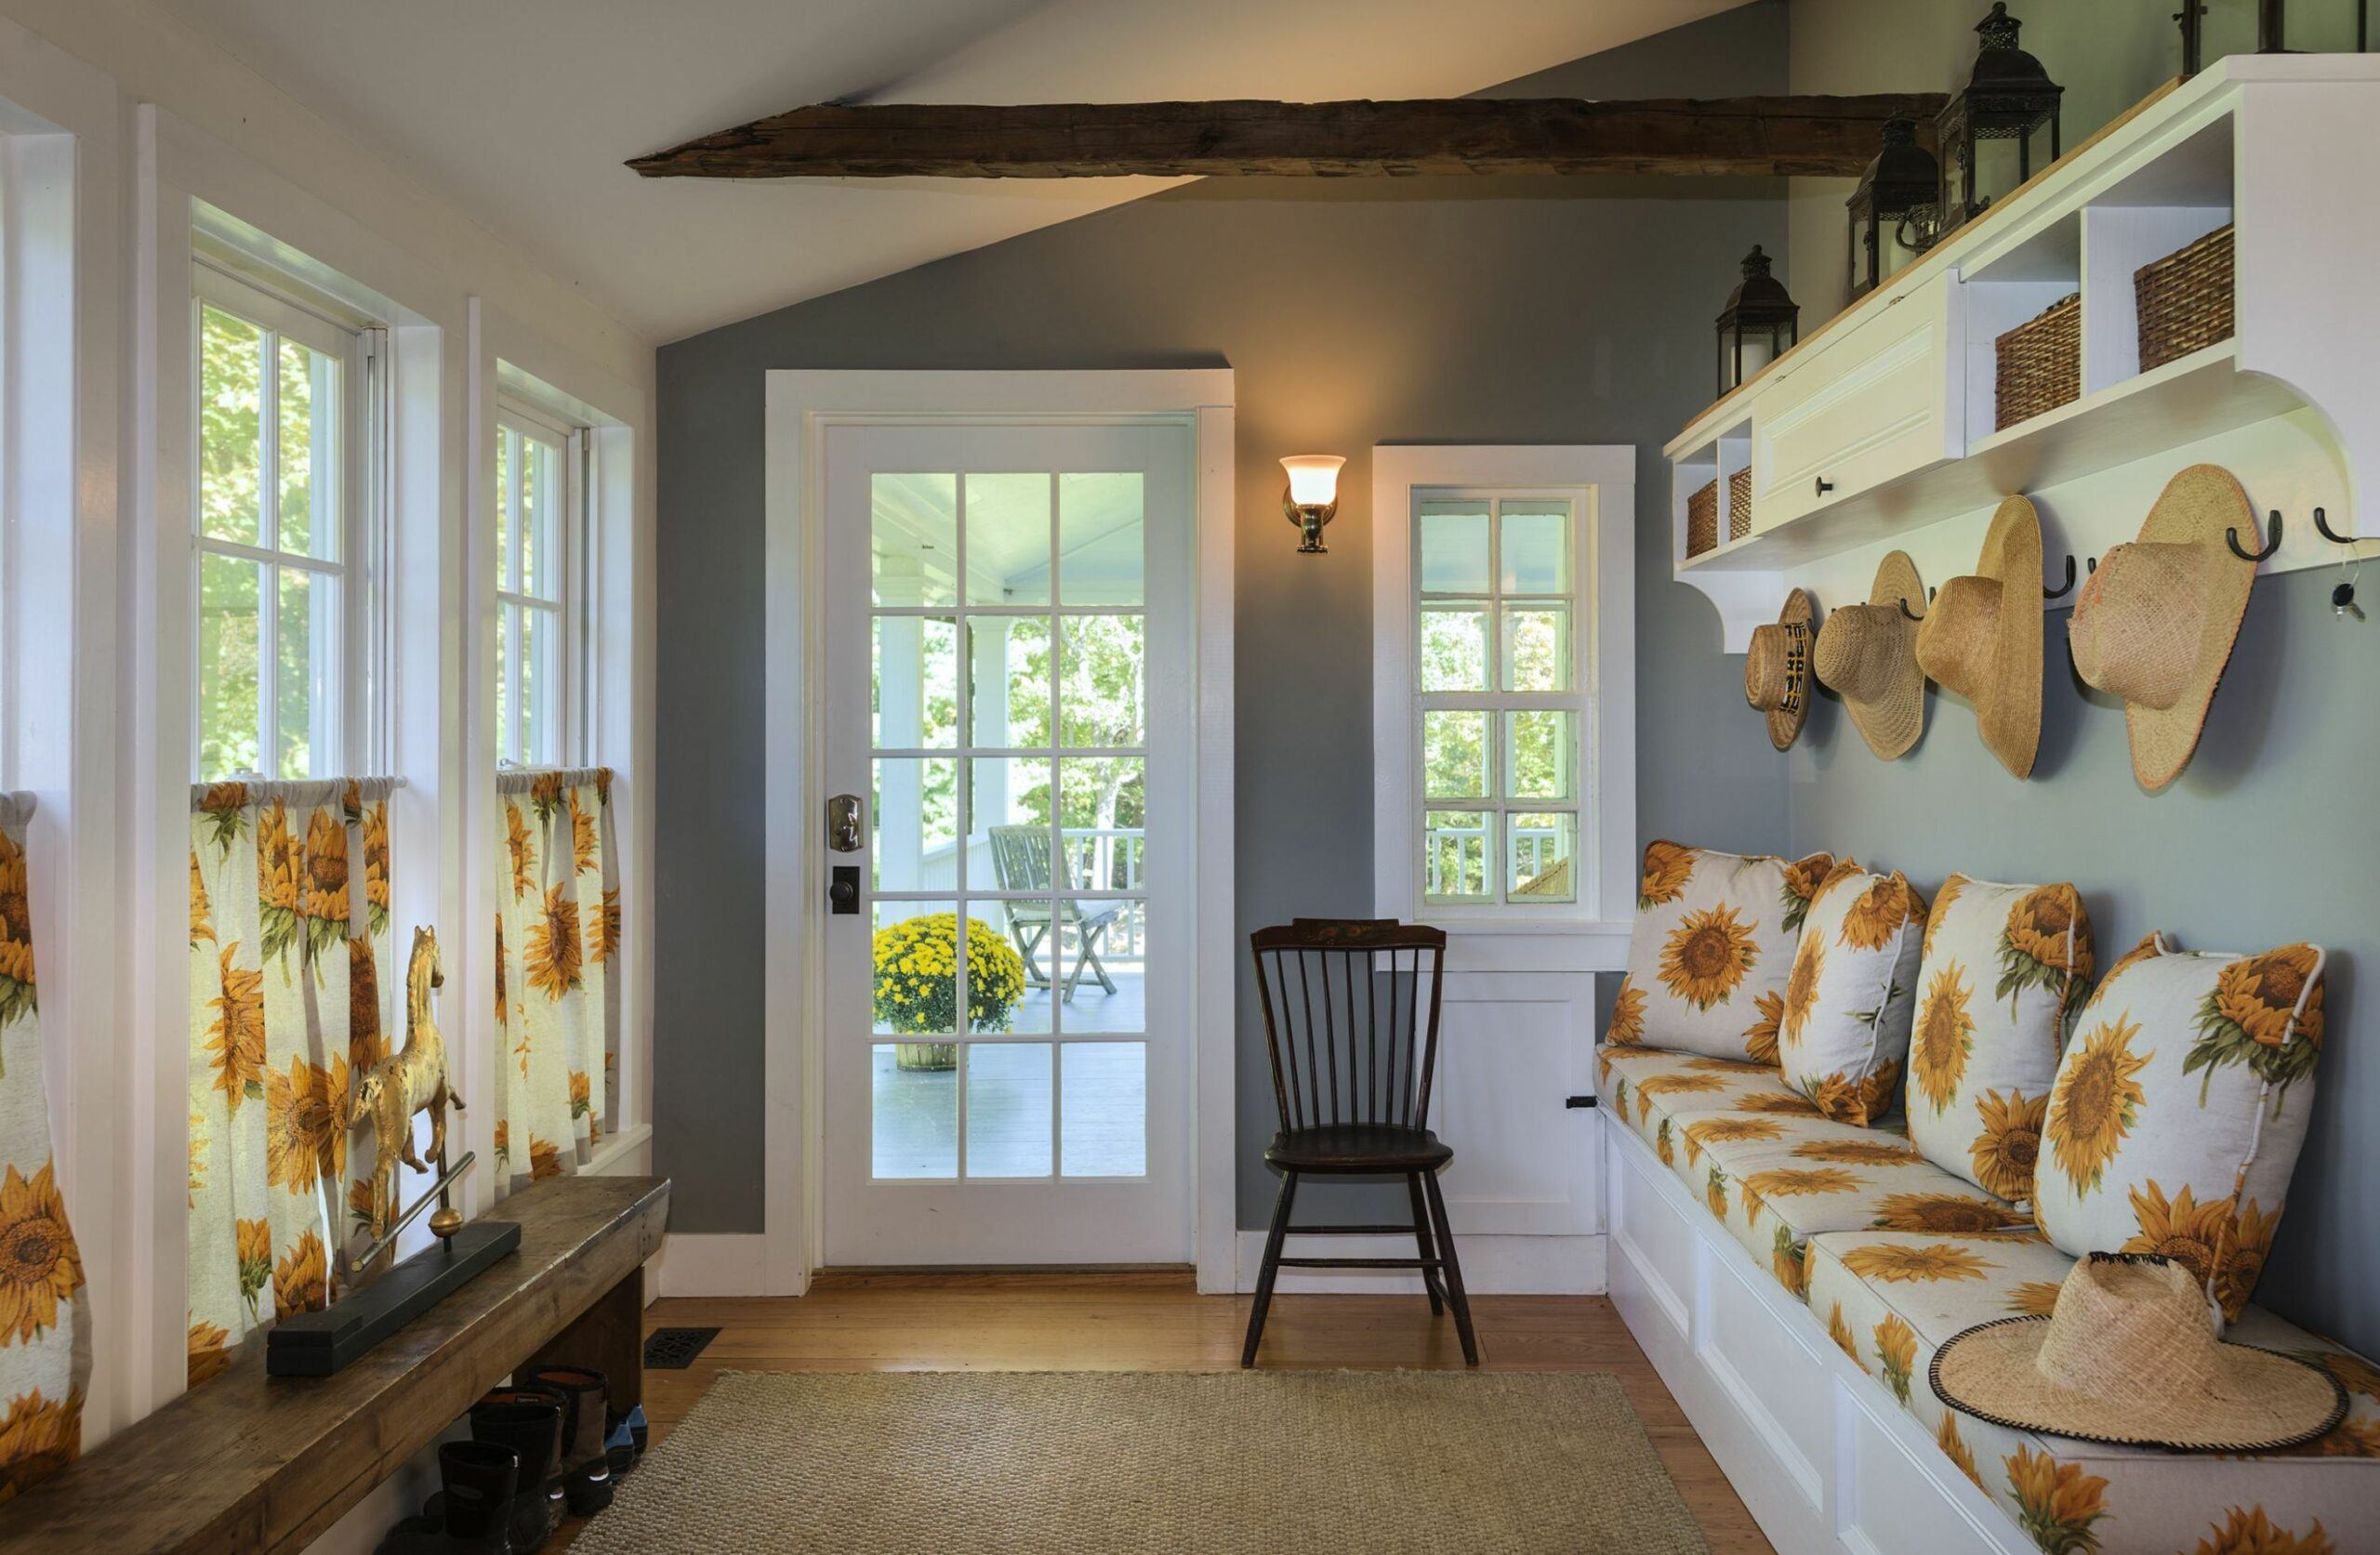 Enclosed Front Porch Mudroom Entry • Porches Ideas - front porch ideas enclosed